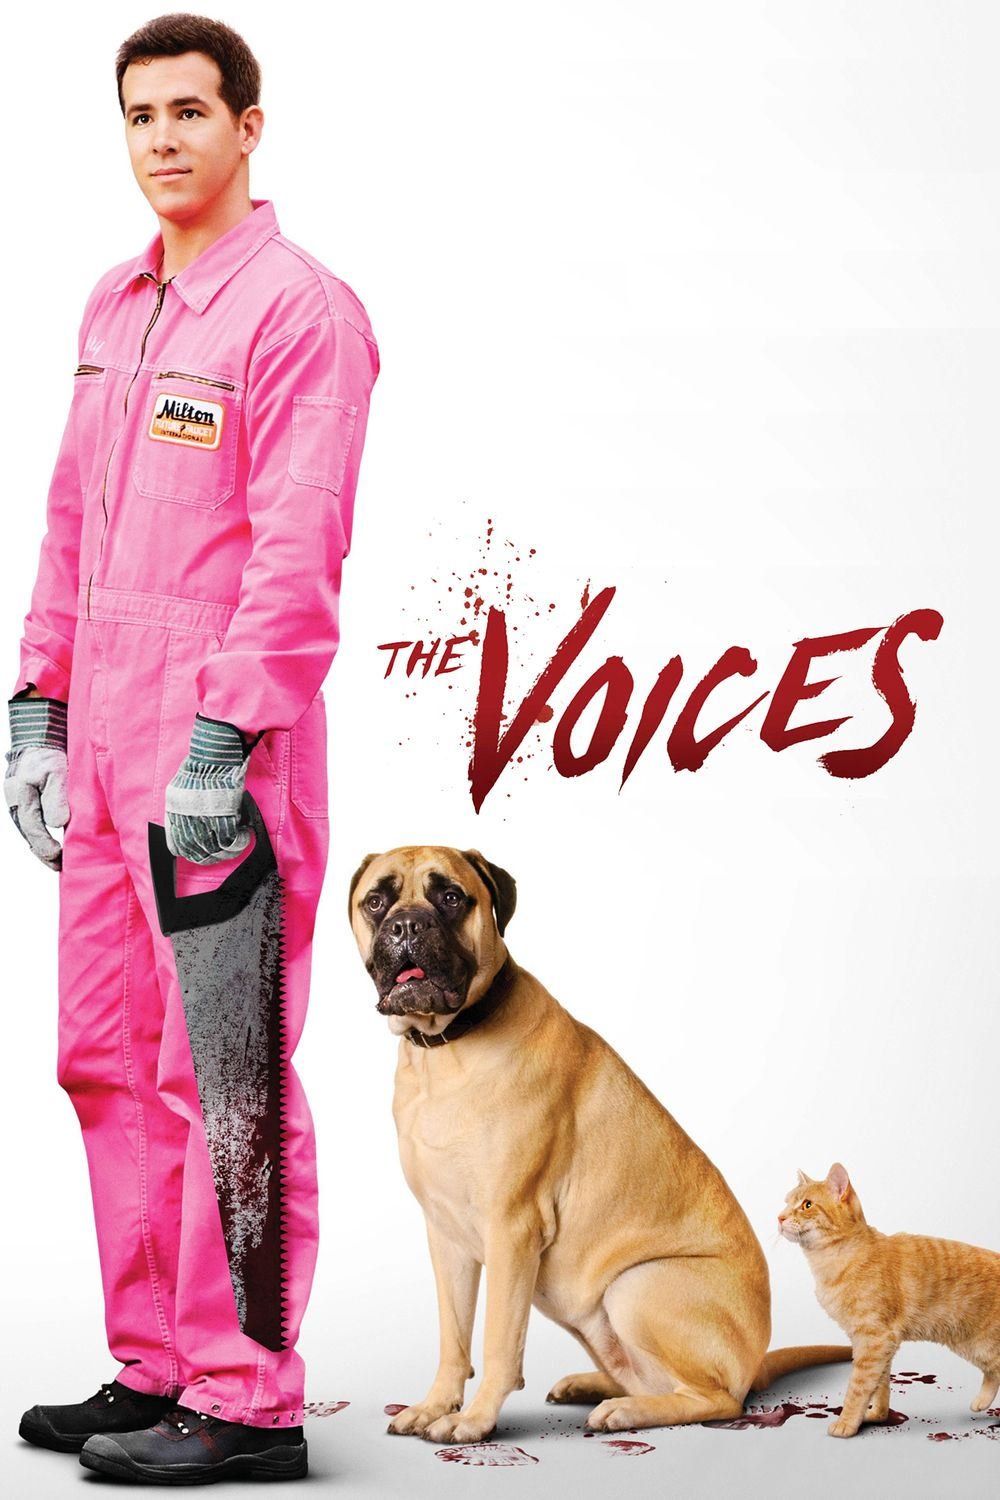 The Voices Full Movie. Click Image to watch The Voices (2015)